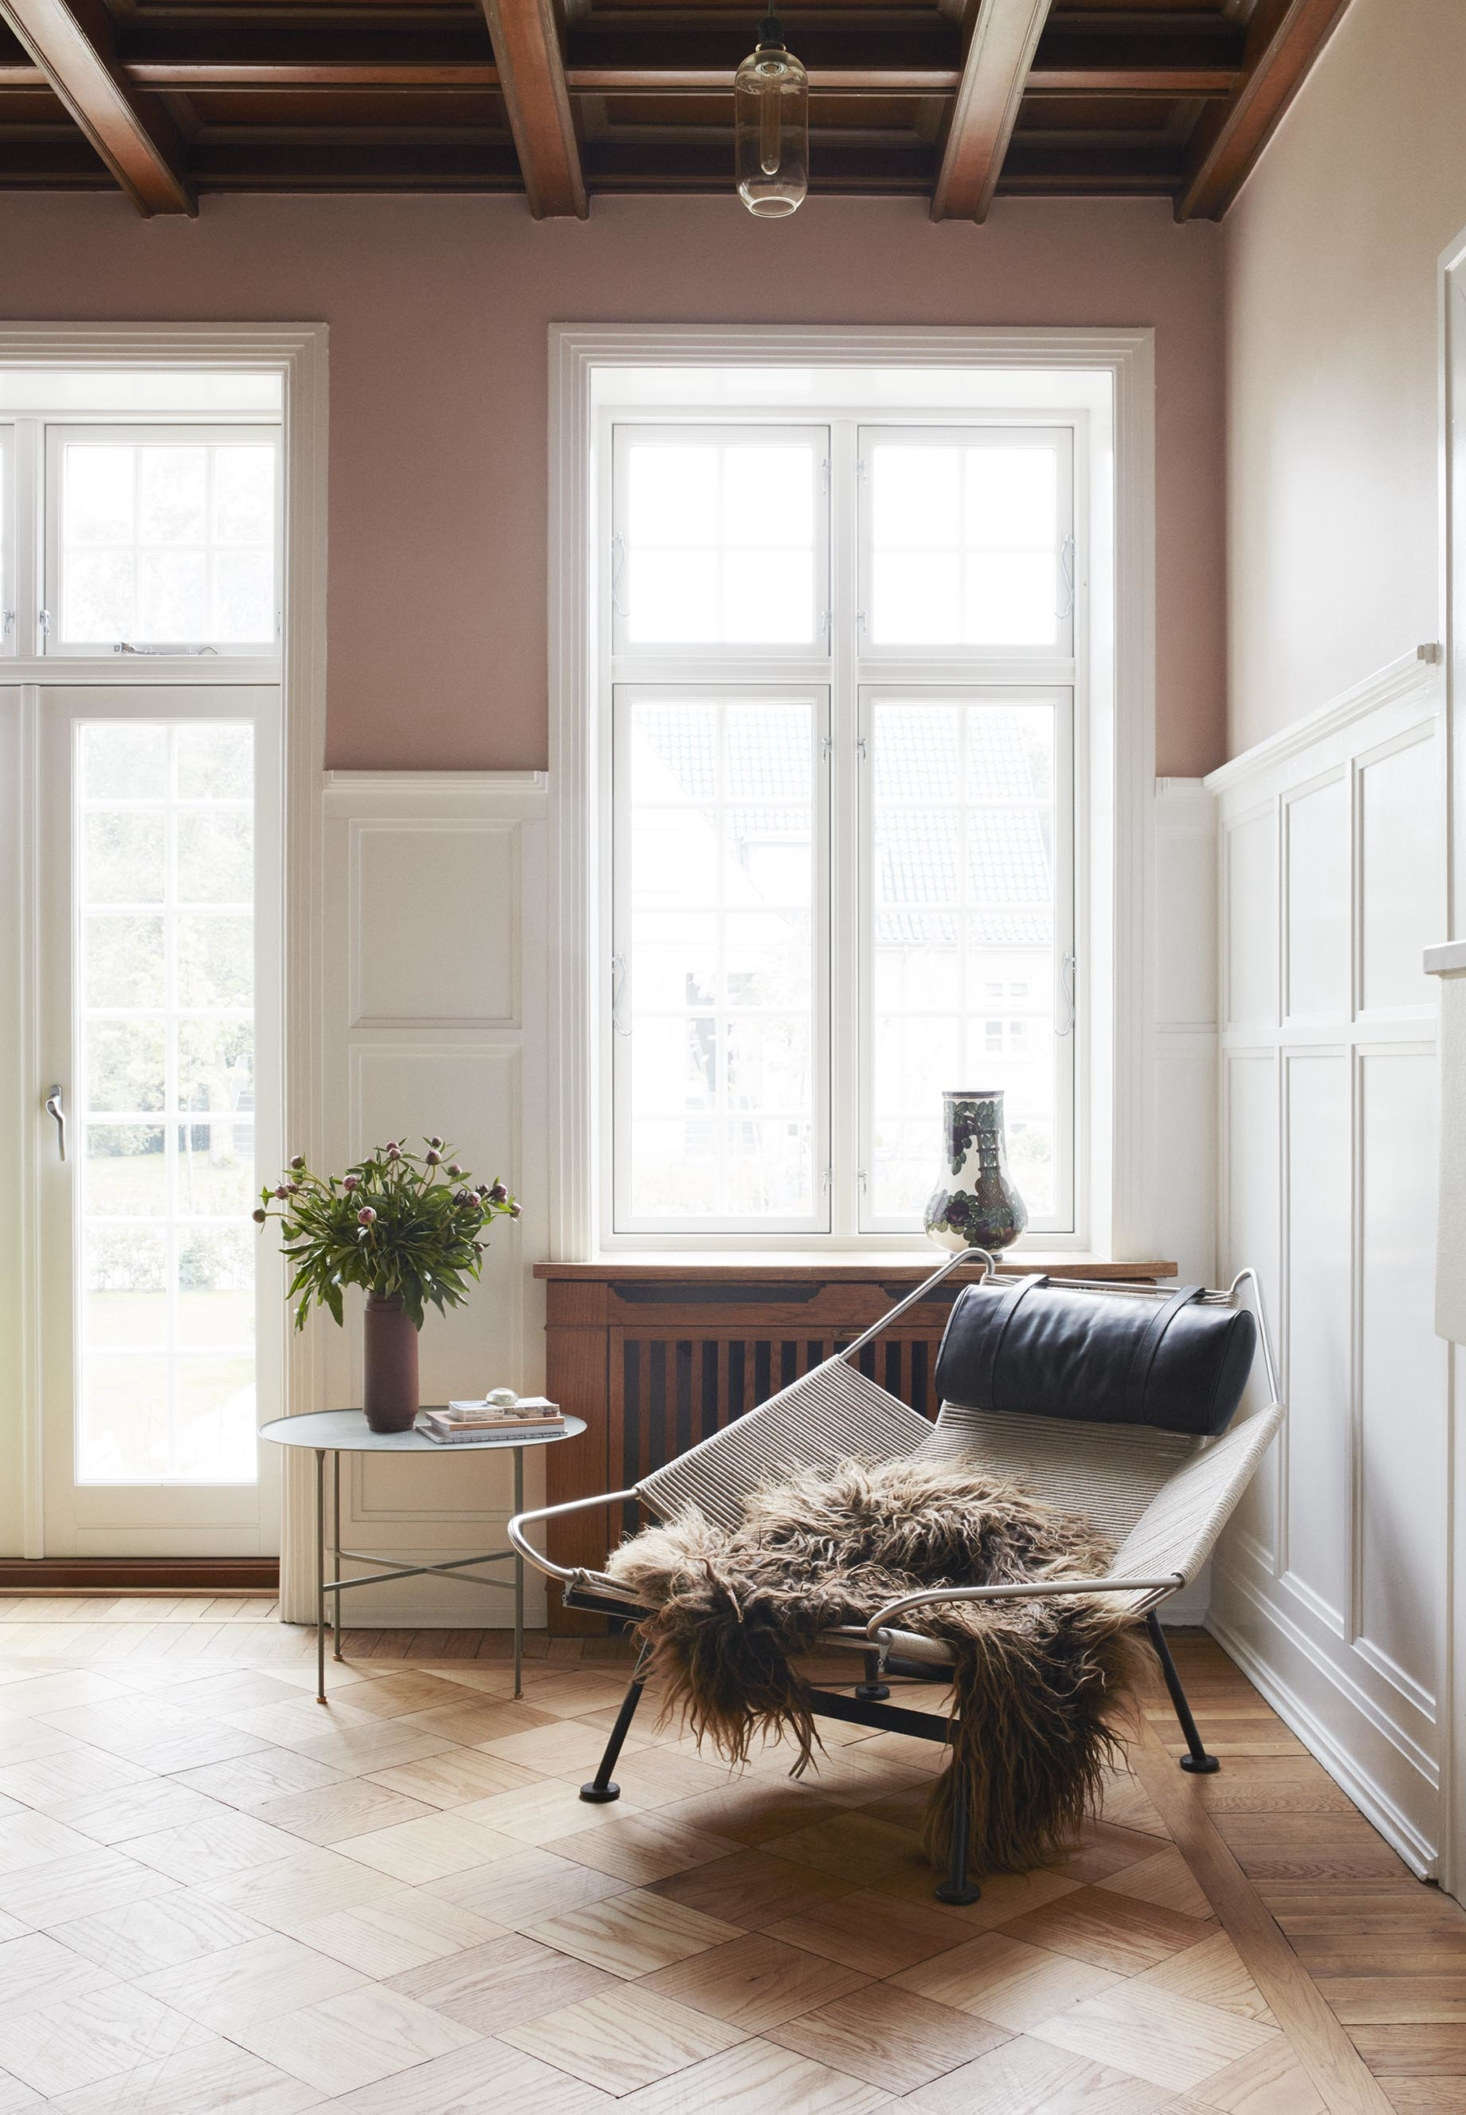 Photo from Little Pink House: A Creative Couple's Classic-with-a-Twist Home in Denmark.